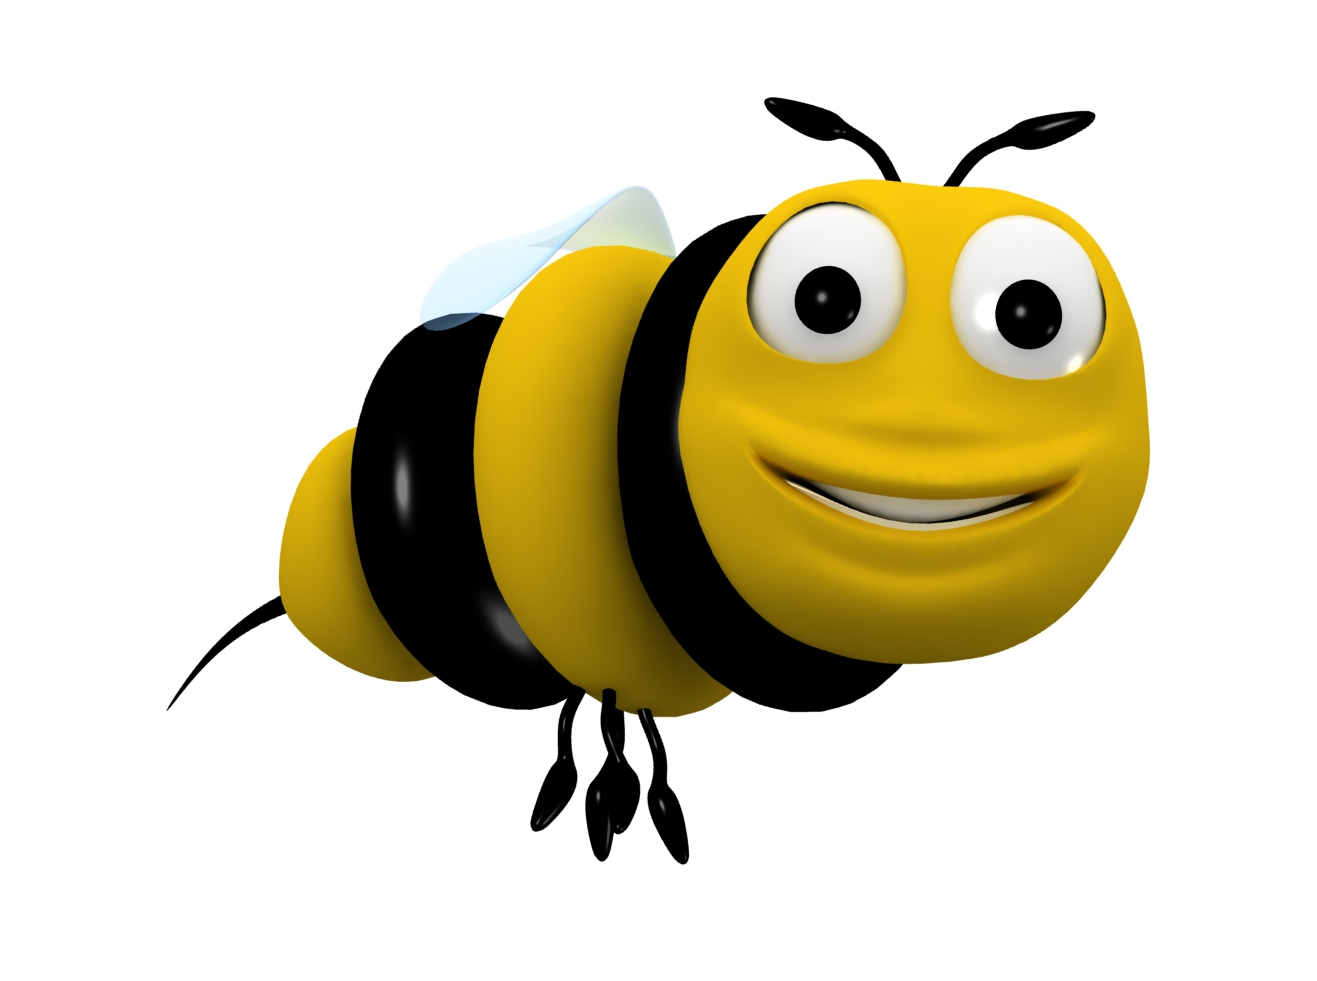 3 Cartoon Character Images : Bee cartoon character d model animated rigged max obj